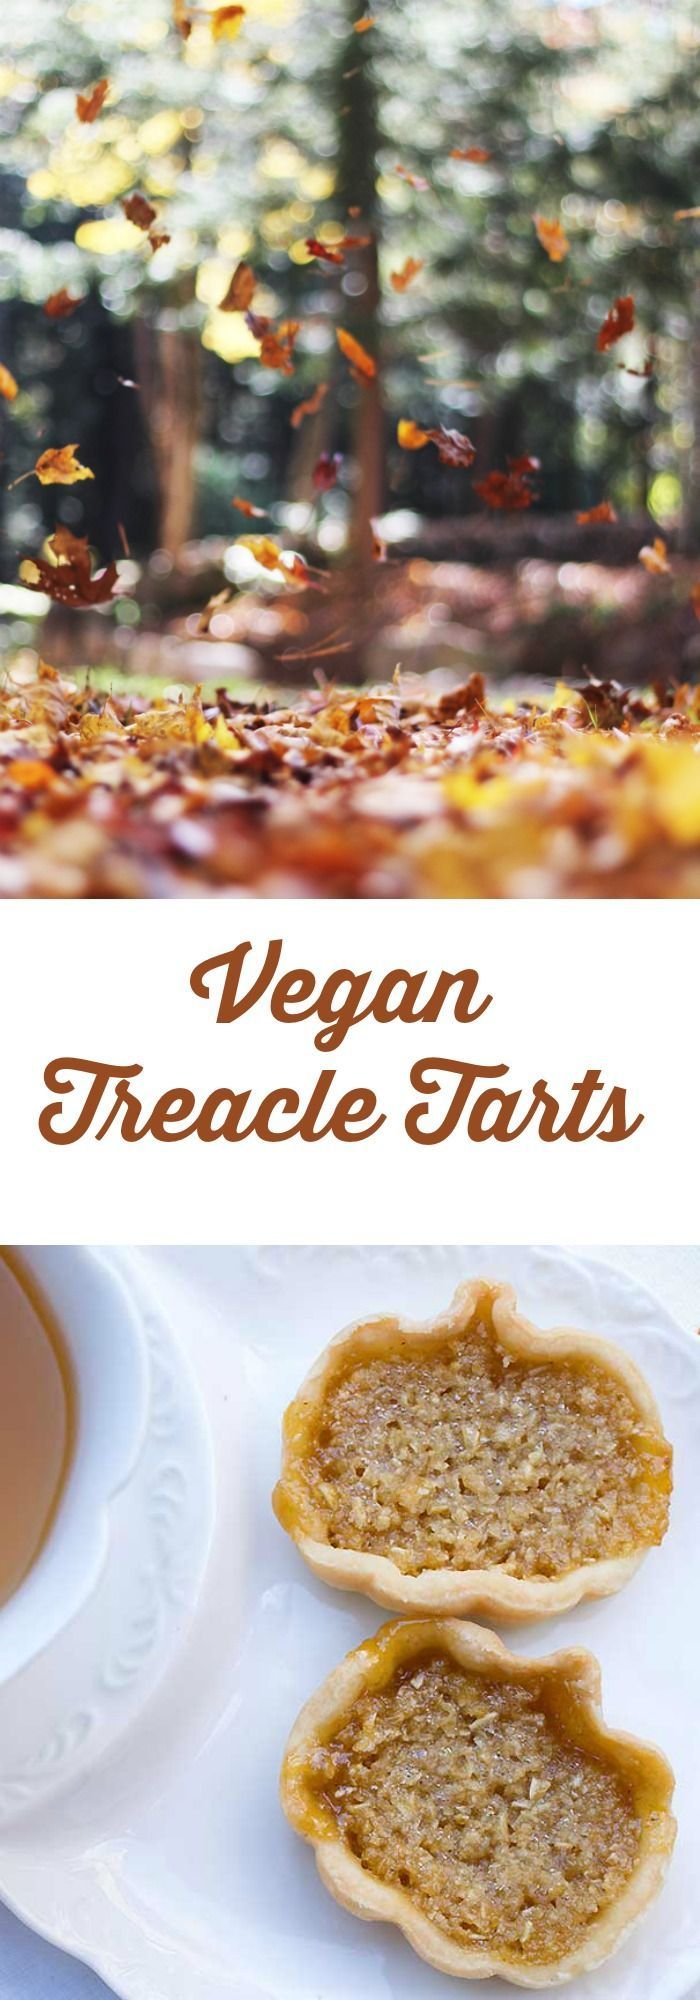 Harry Potter's Mini Vegan Treacle Tarts is a healthier version of a traditional English dessert.